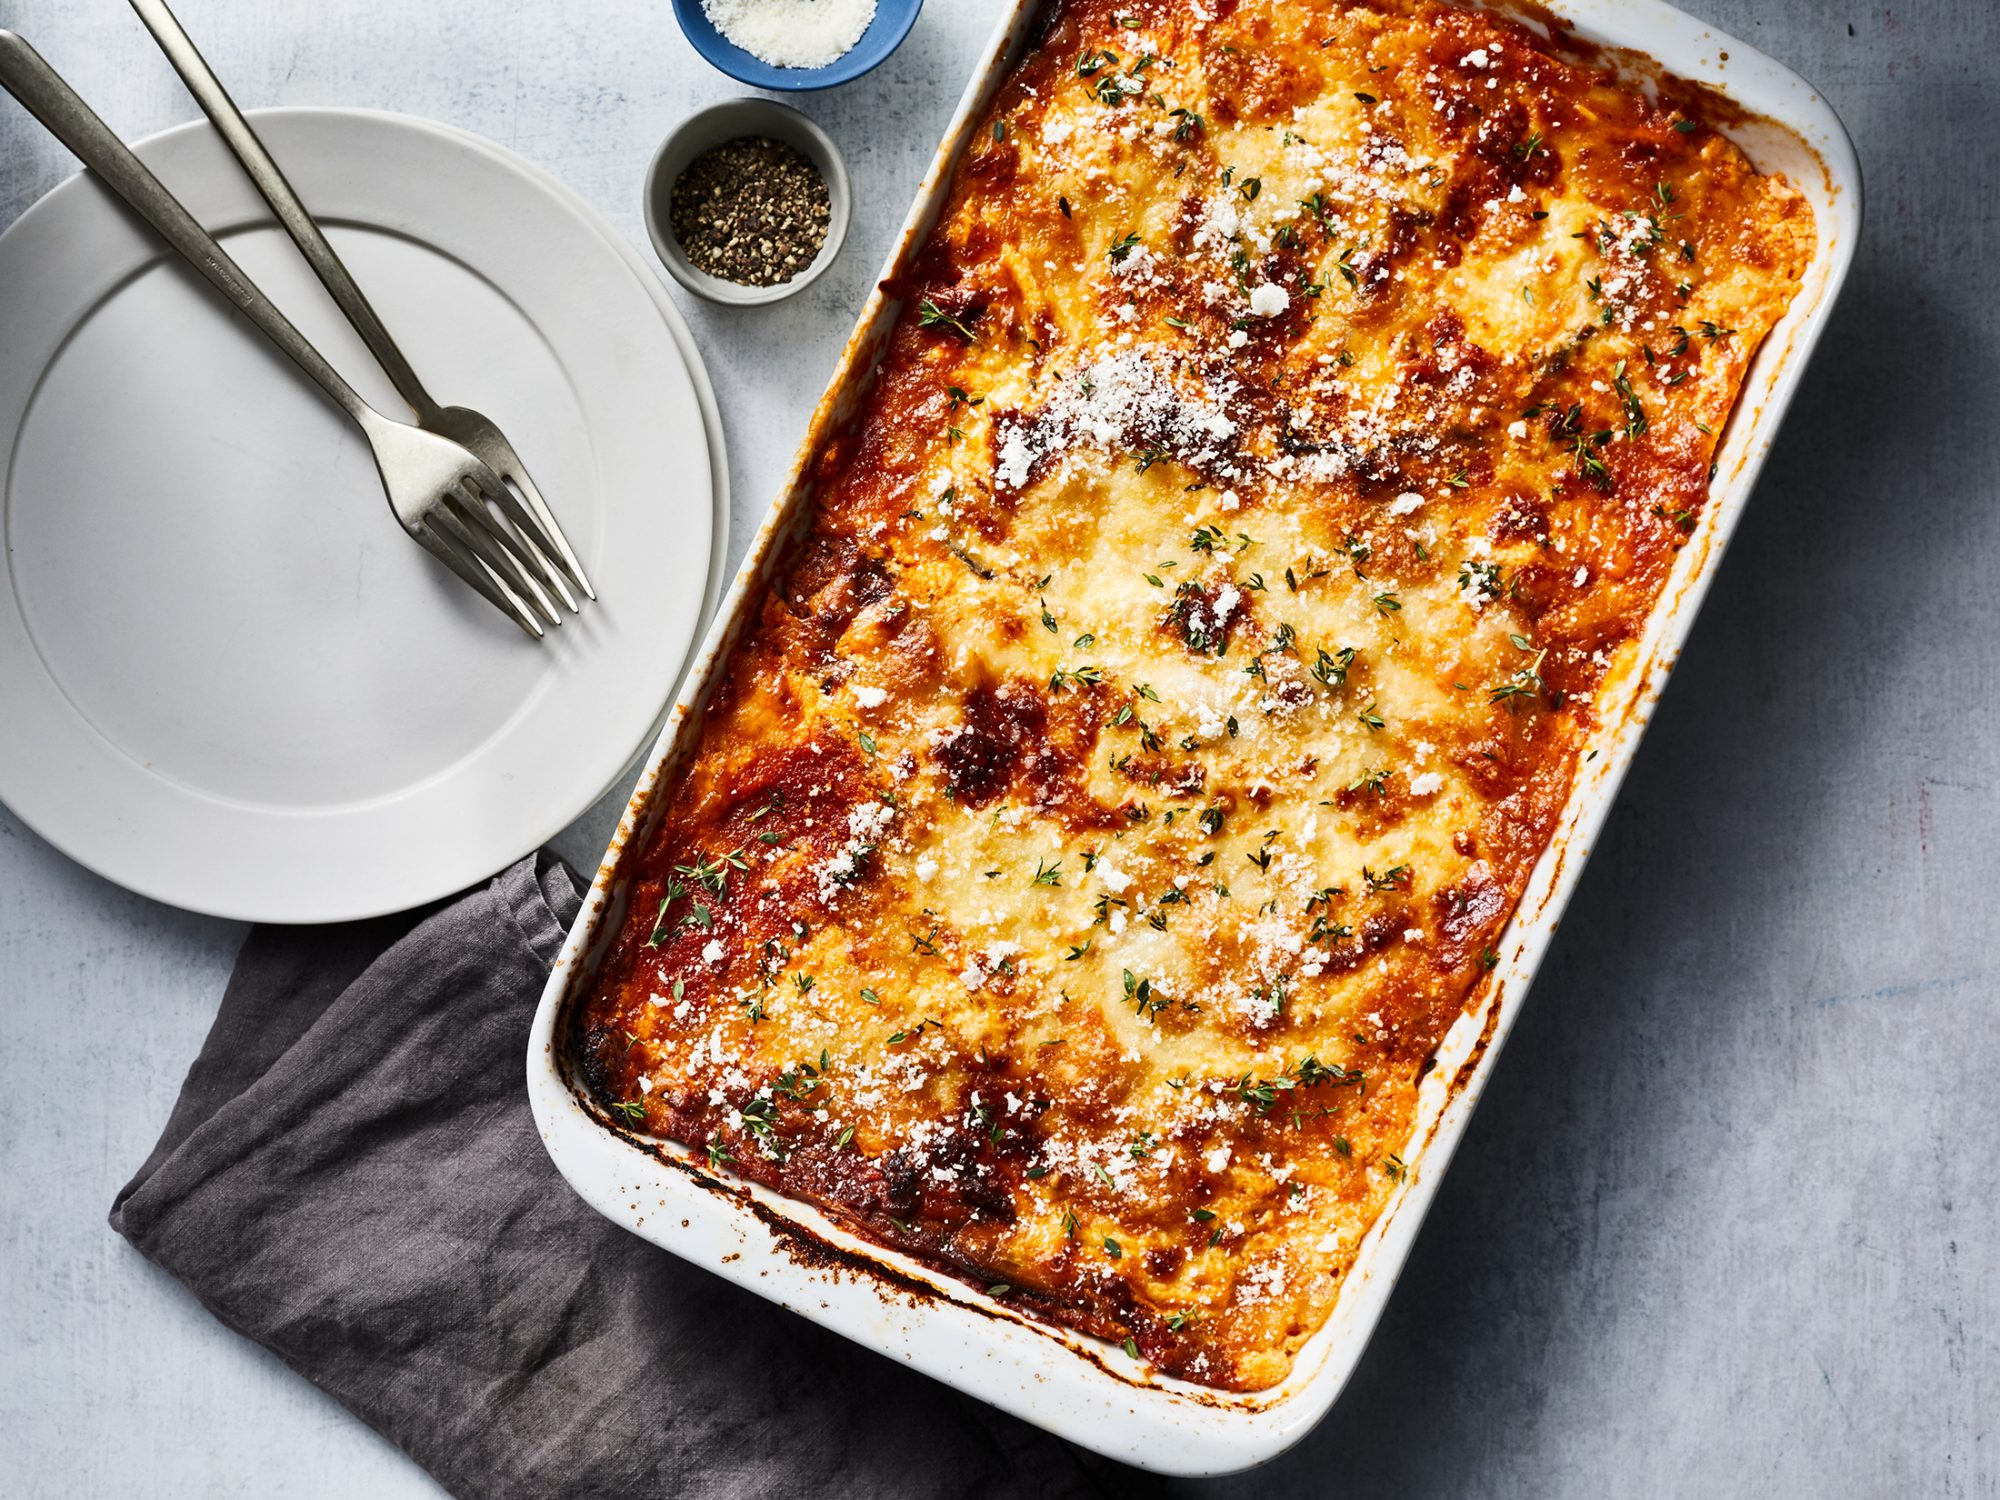 Wait, Is Lasagna Actually a Casserole?